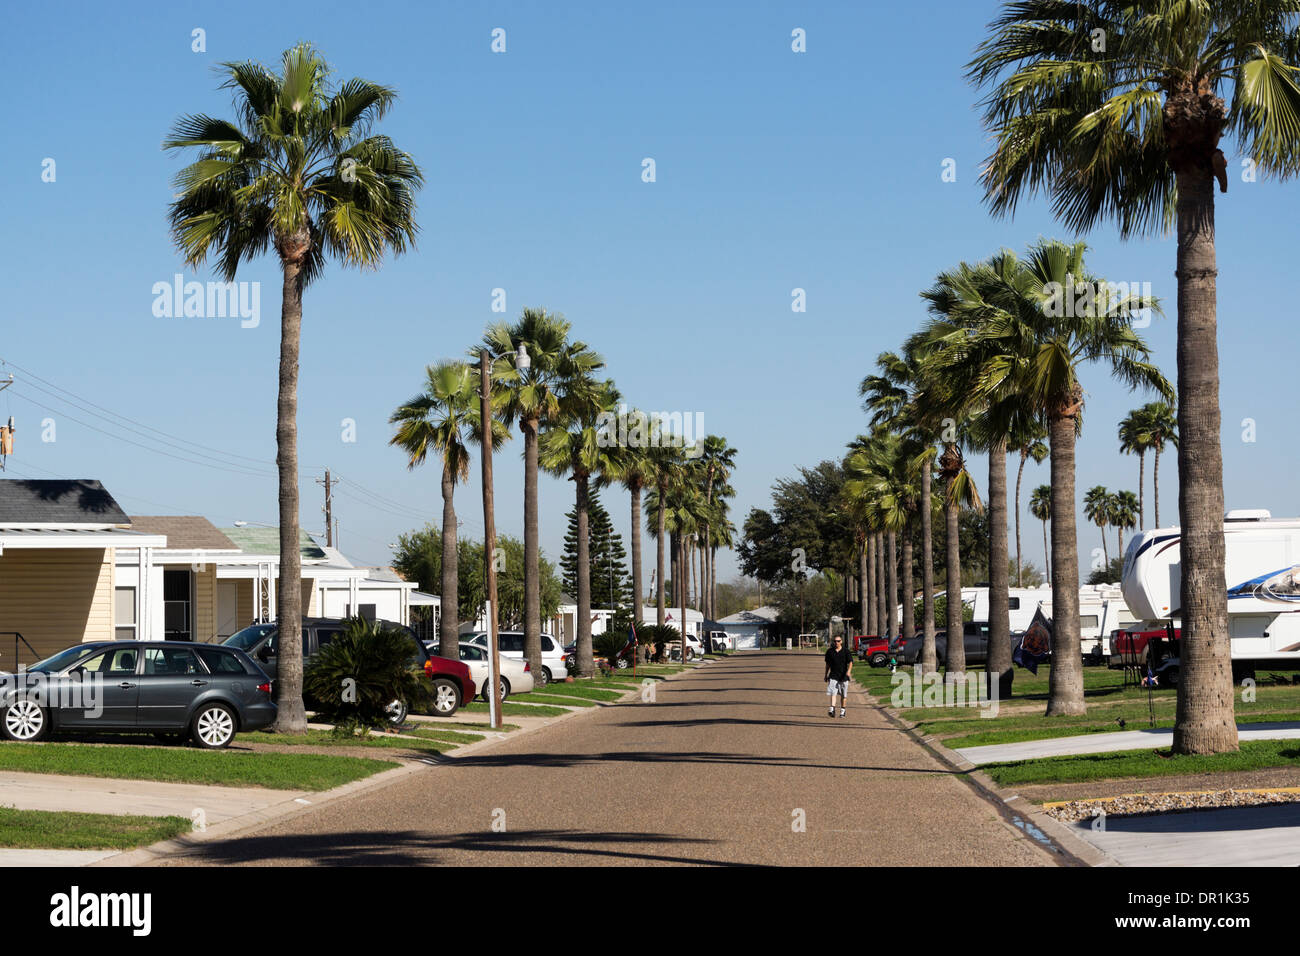 Palm Trees Line A Street In South Texas Mobile Home And RV Resort